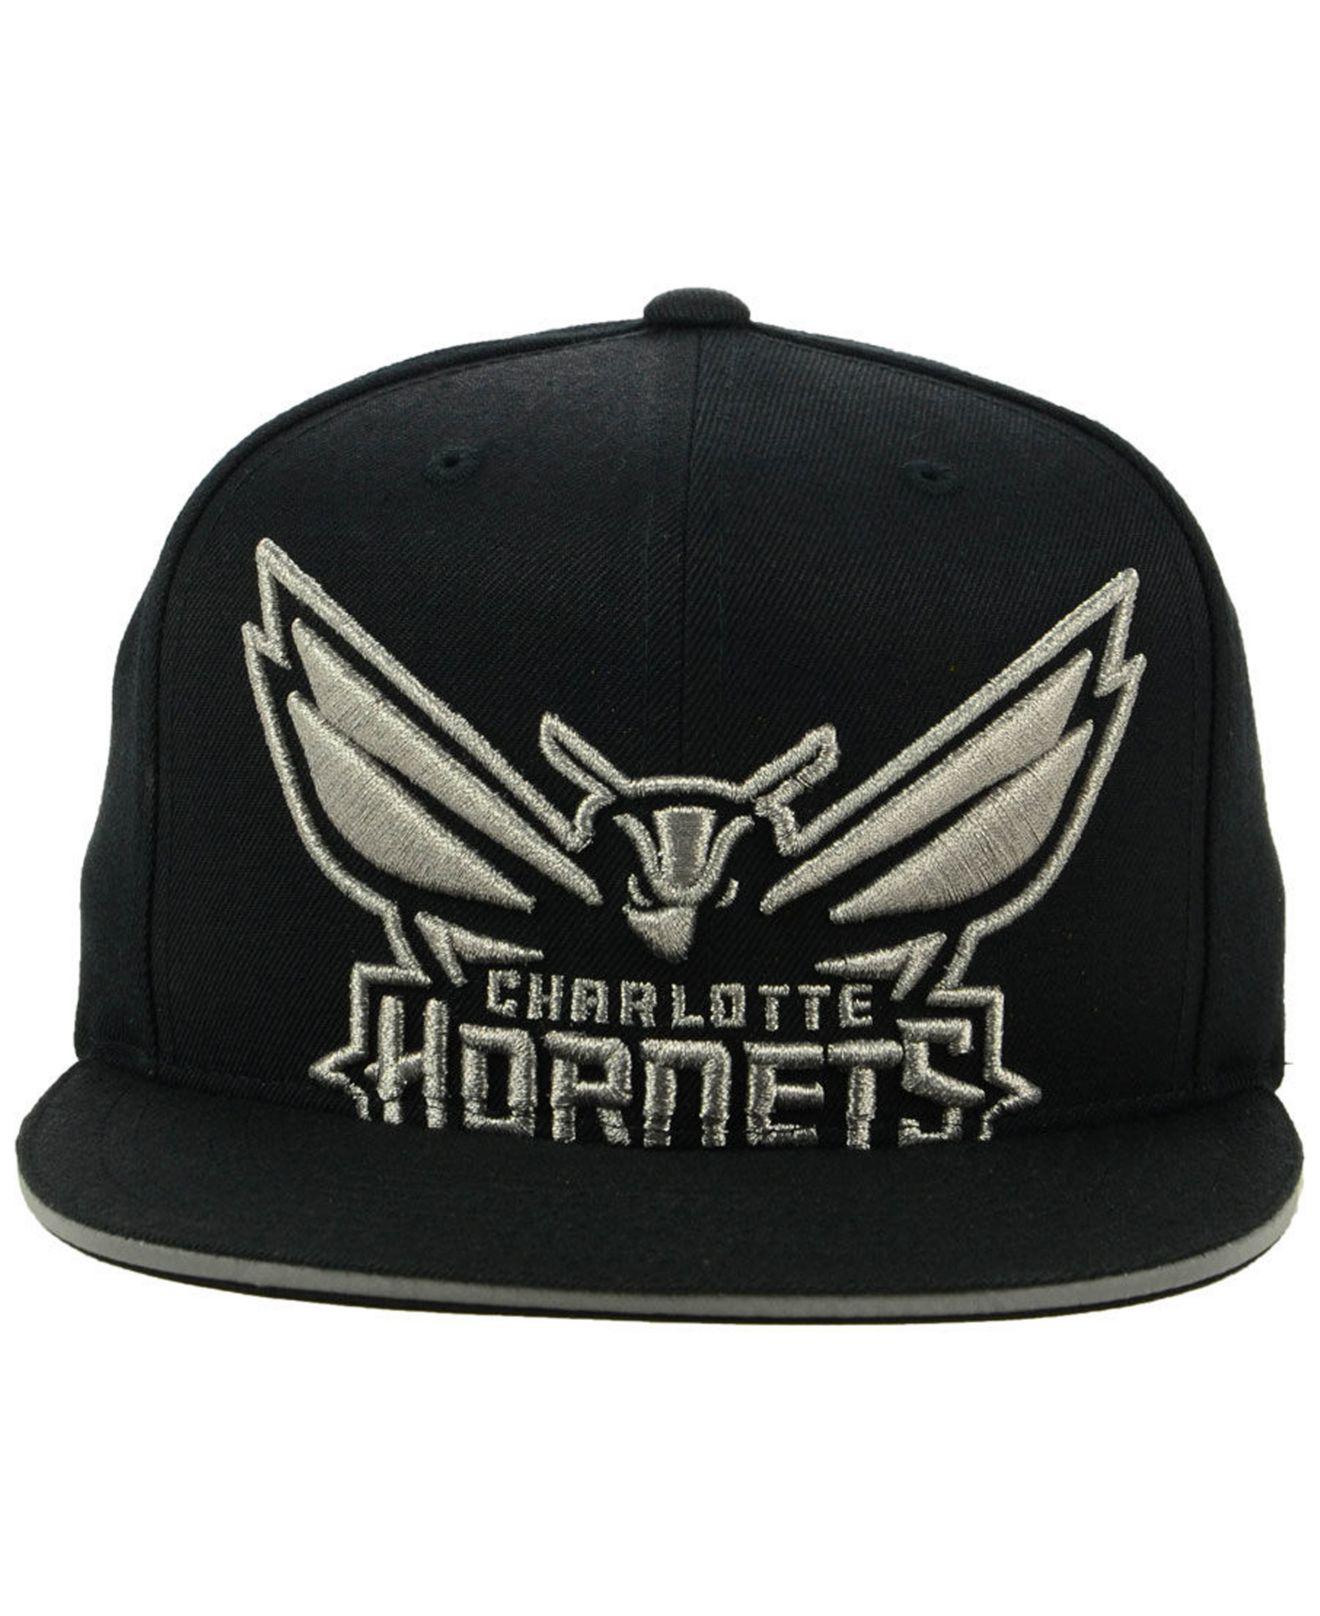 reputable site 2064a d4c61 ... coupon for lyst mitchell ness charlotte hornets cropped metallic snapback  cap in black for men 4db81